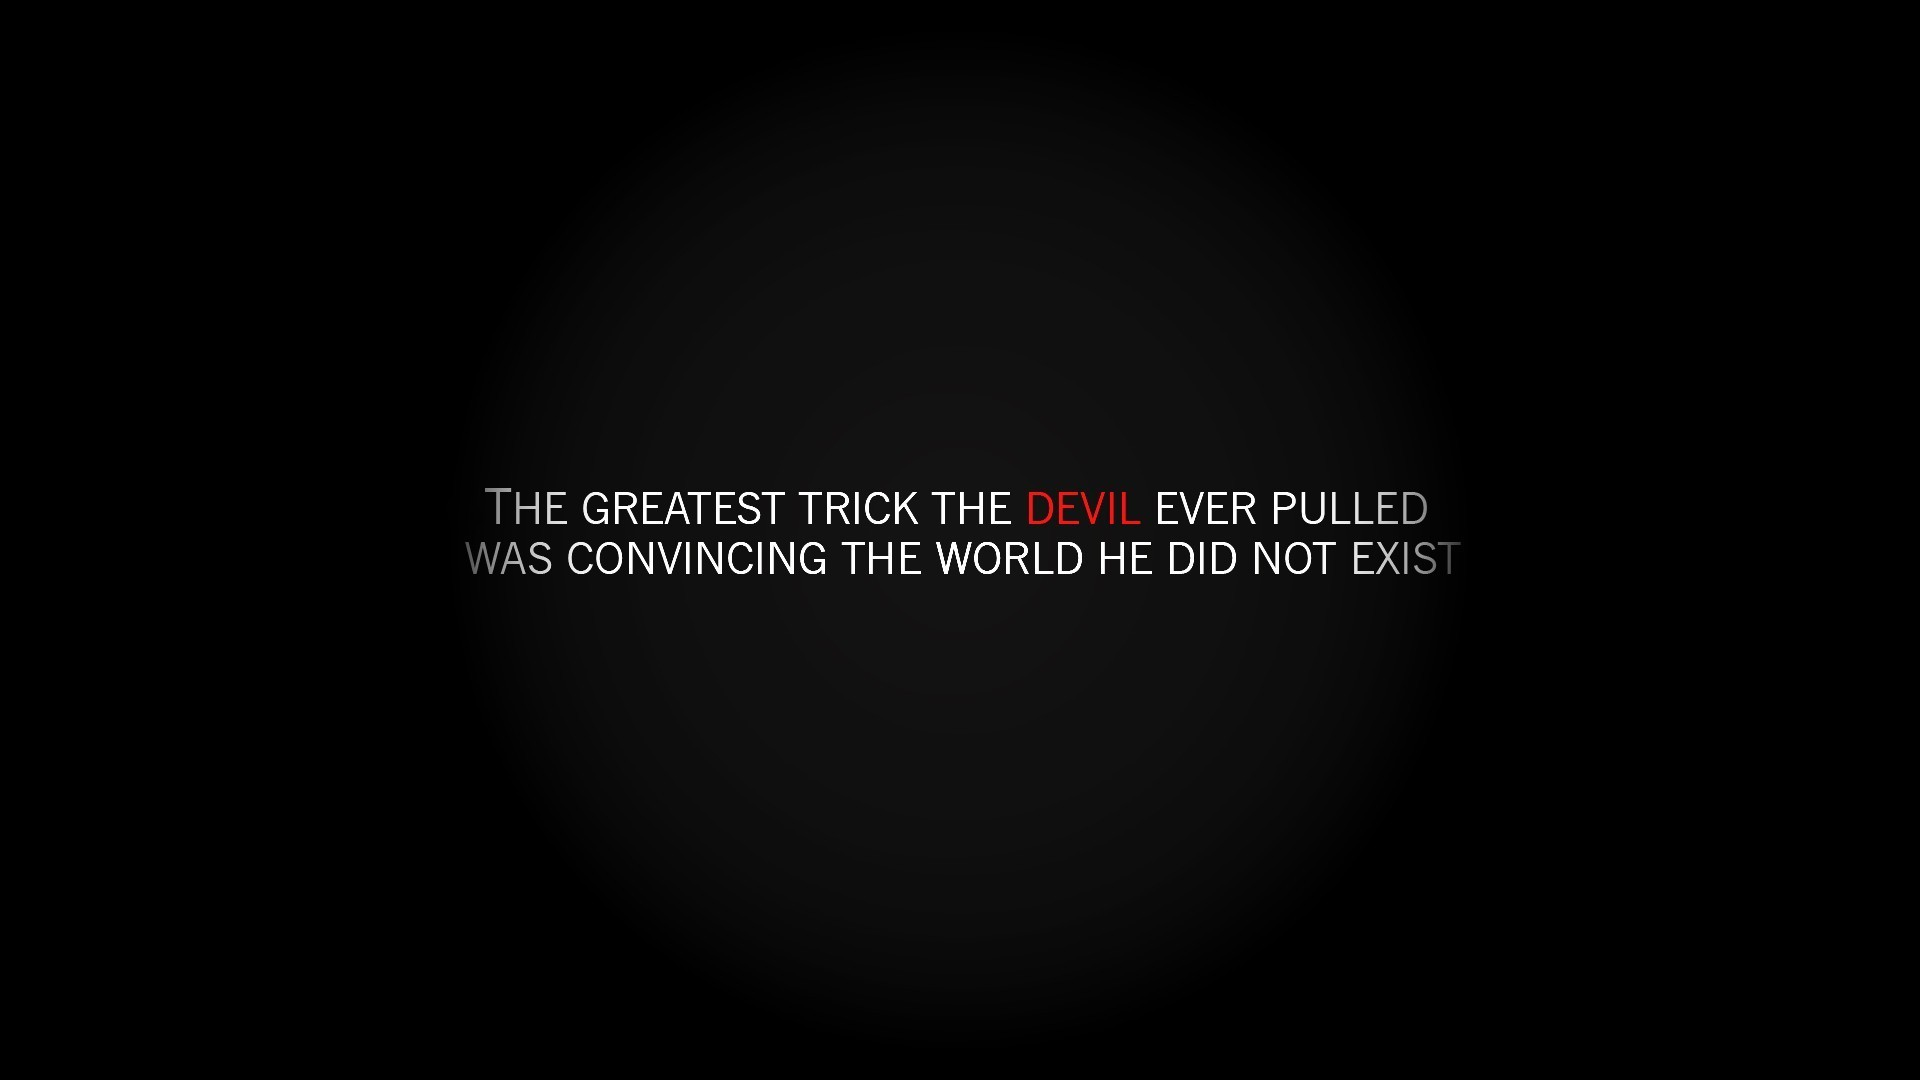 Devil Quotes Saying Wallpaper